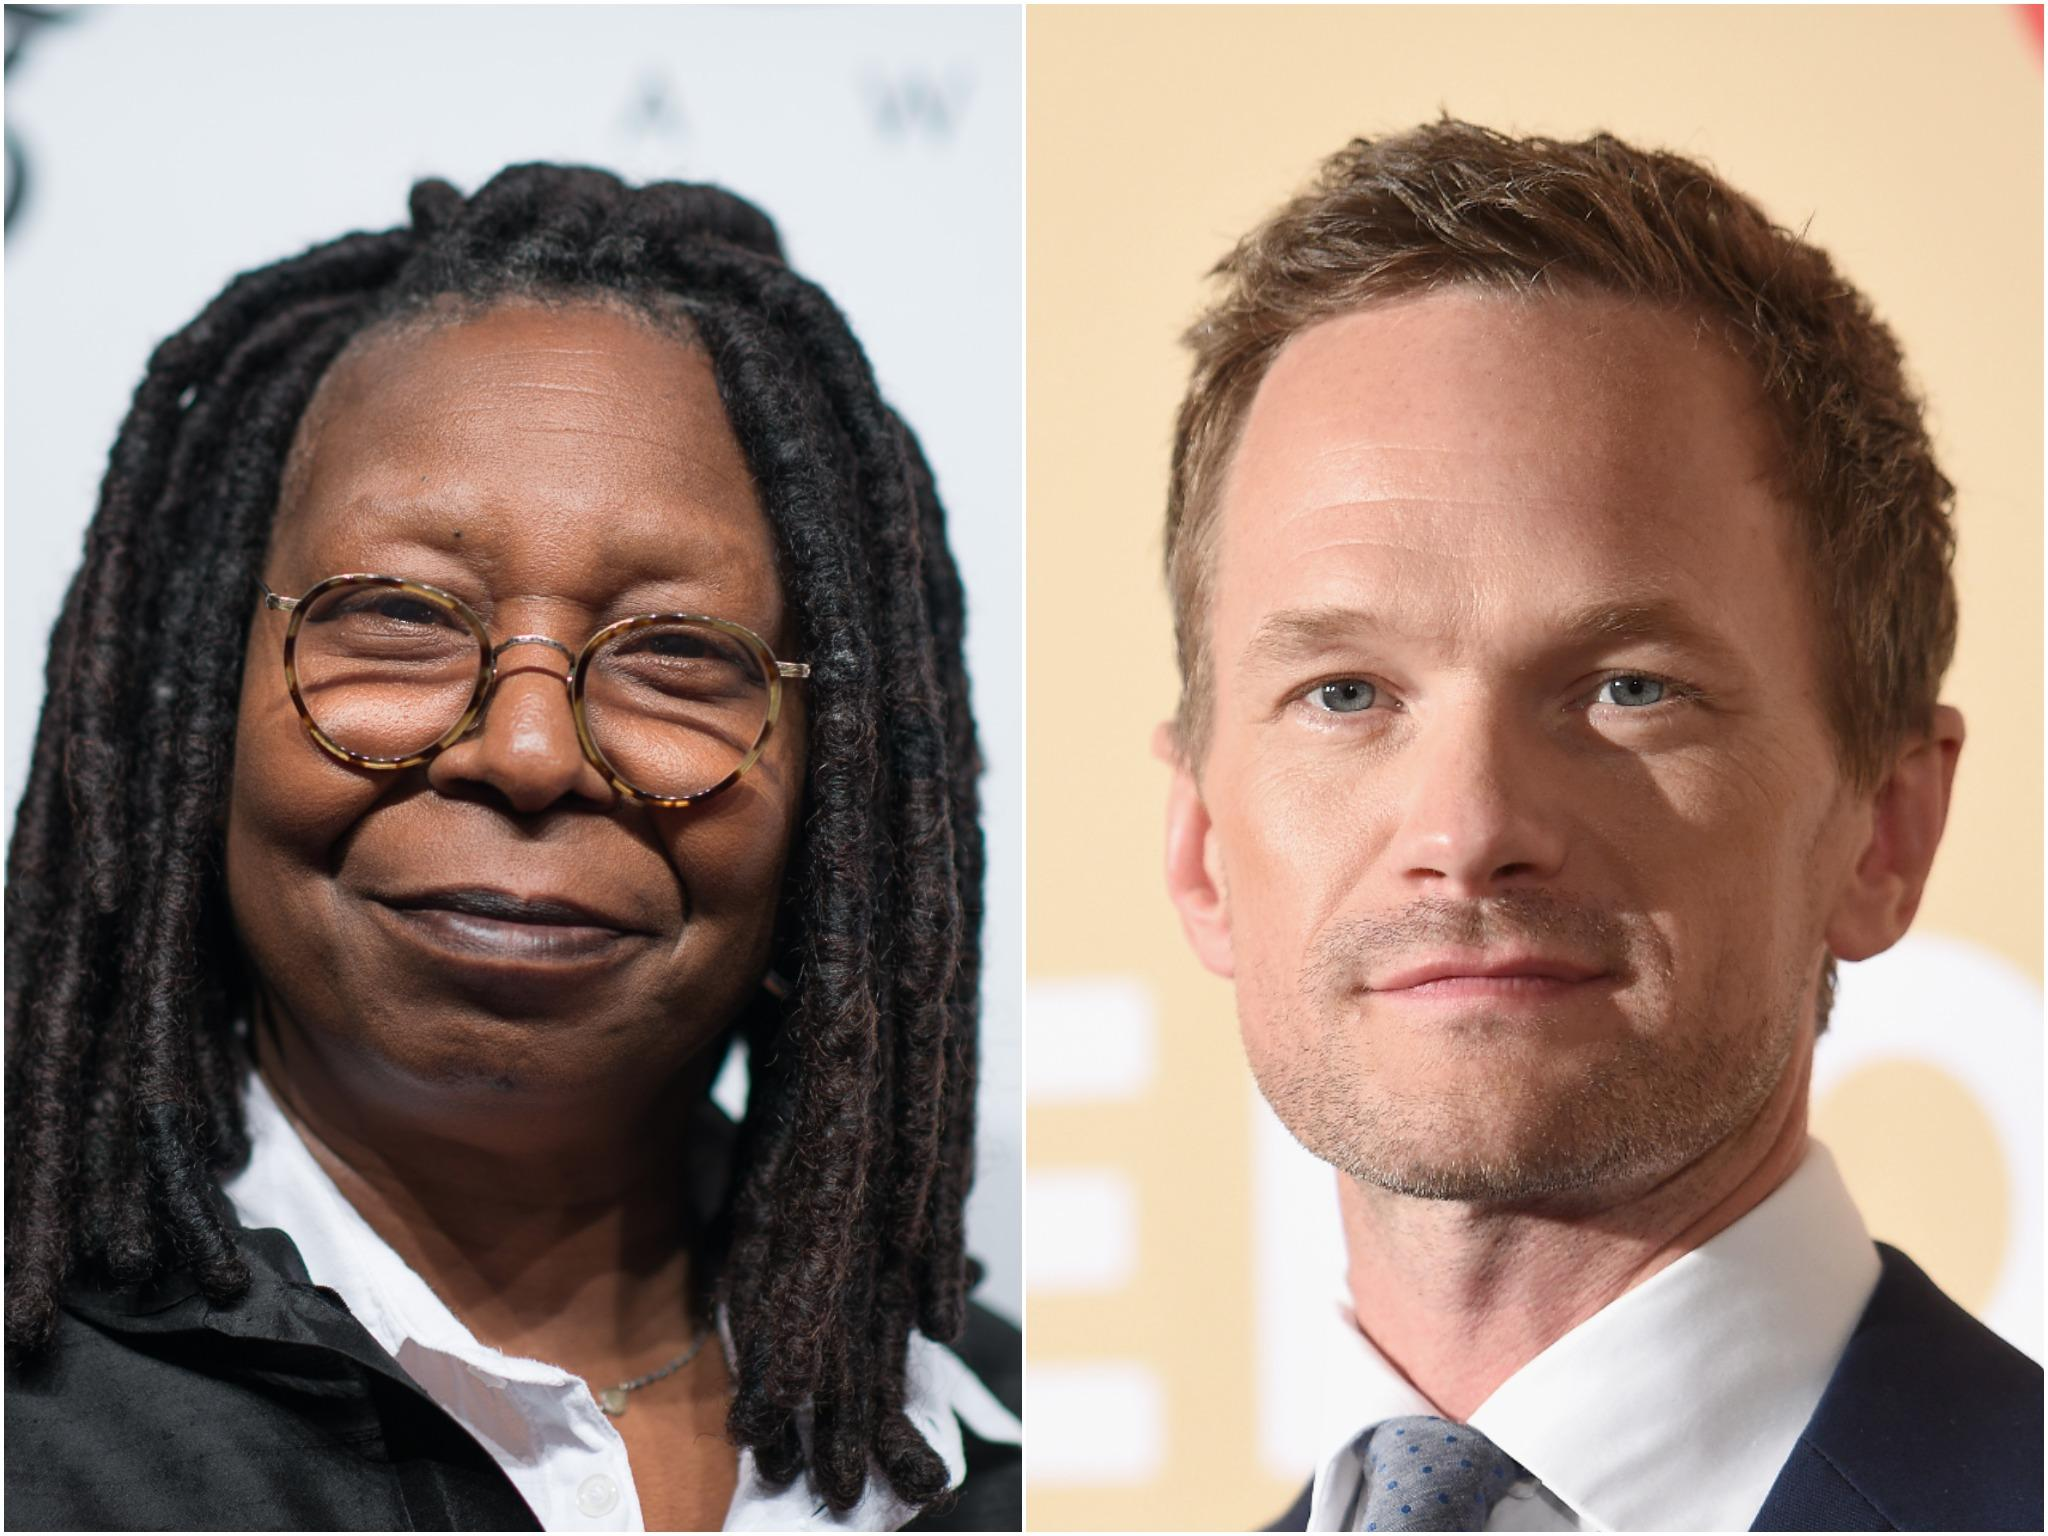 Neil Patrick Harris reveals Whoopi Goldberg once told him 'she was going to have sex with me'